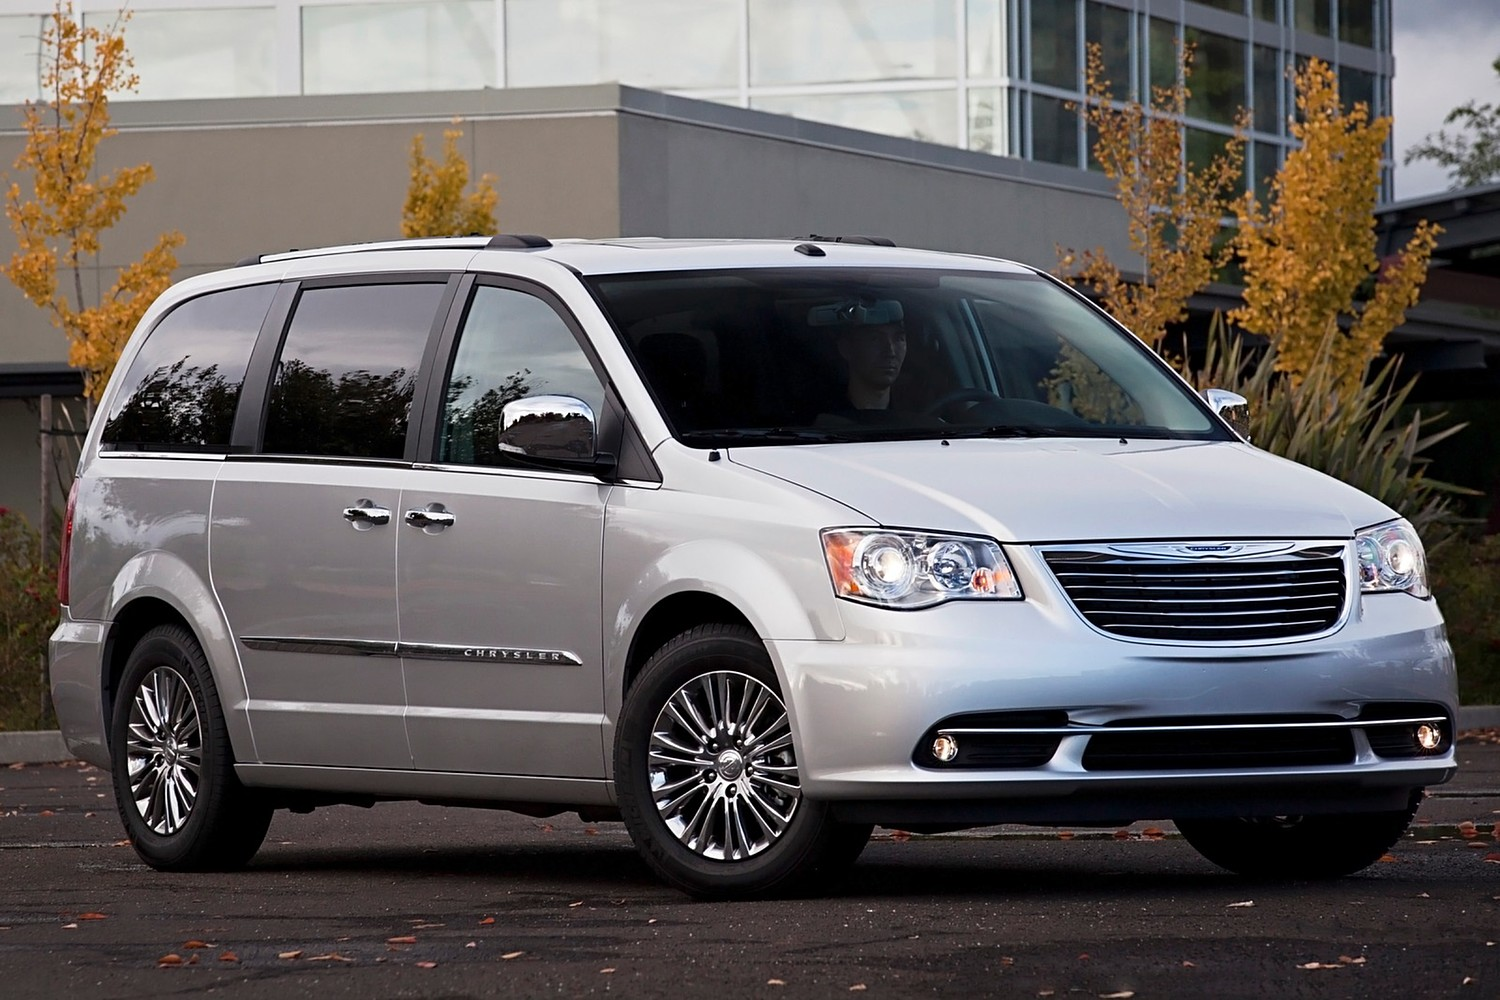 Chrysler Town and Country Limited Passenger Minivan Exterior (2013 model year shown)